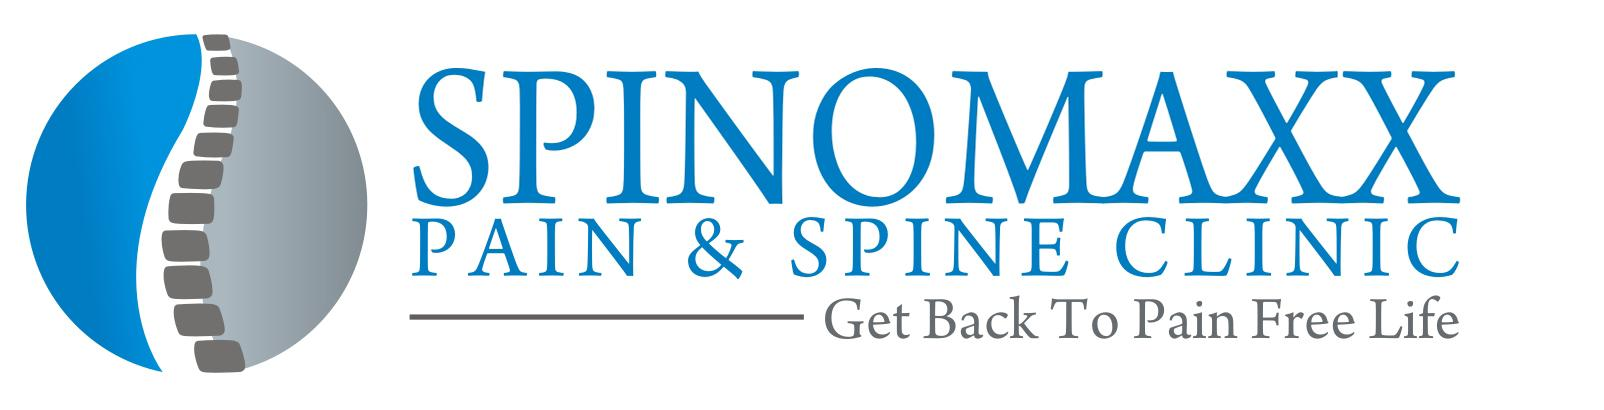 Spinomax Pain and Spine Clinic